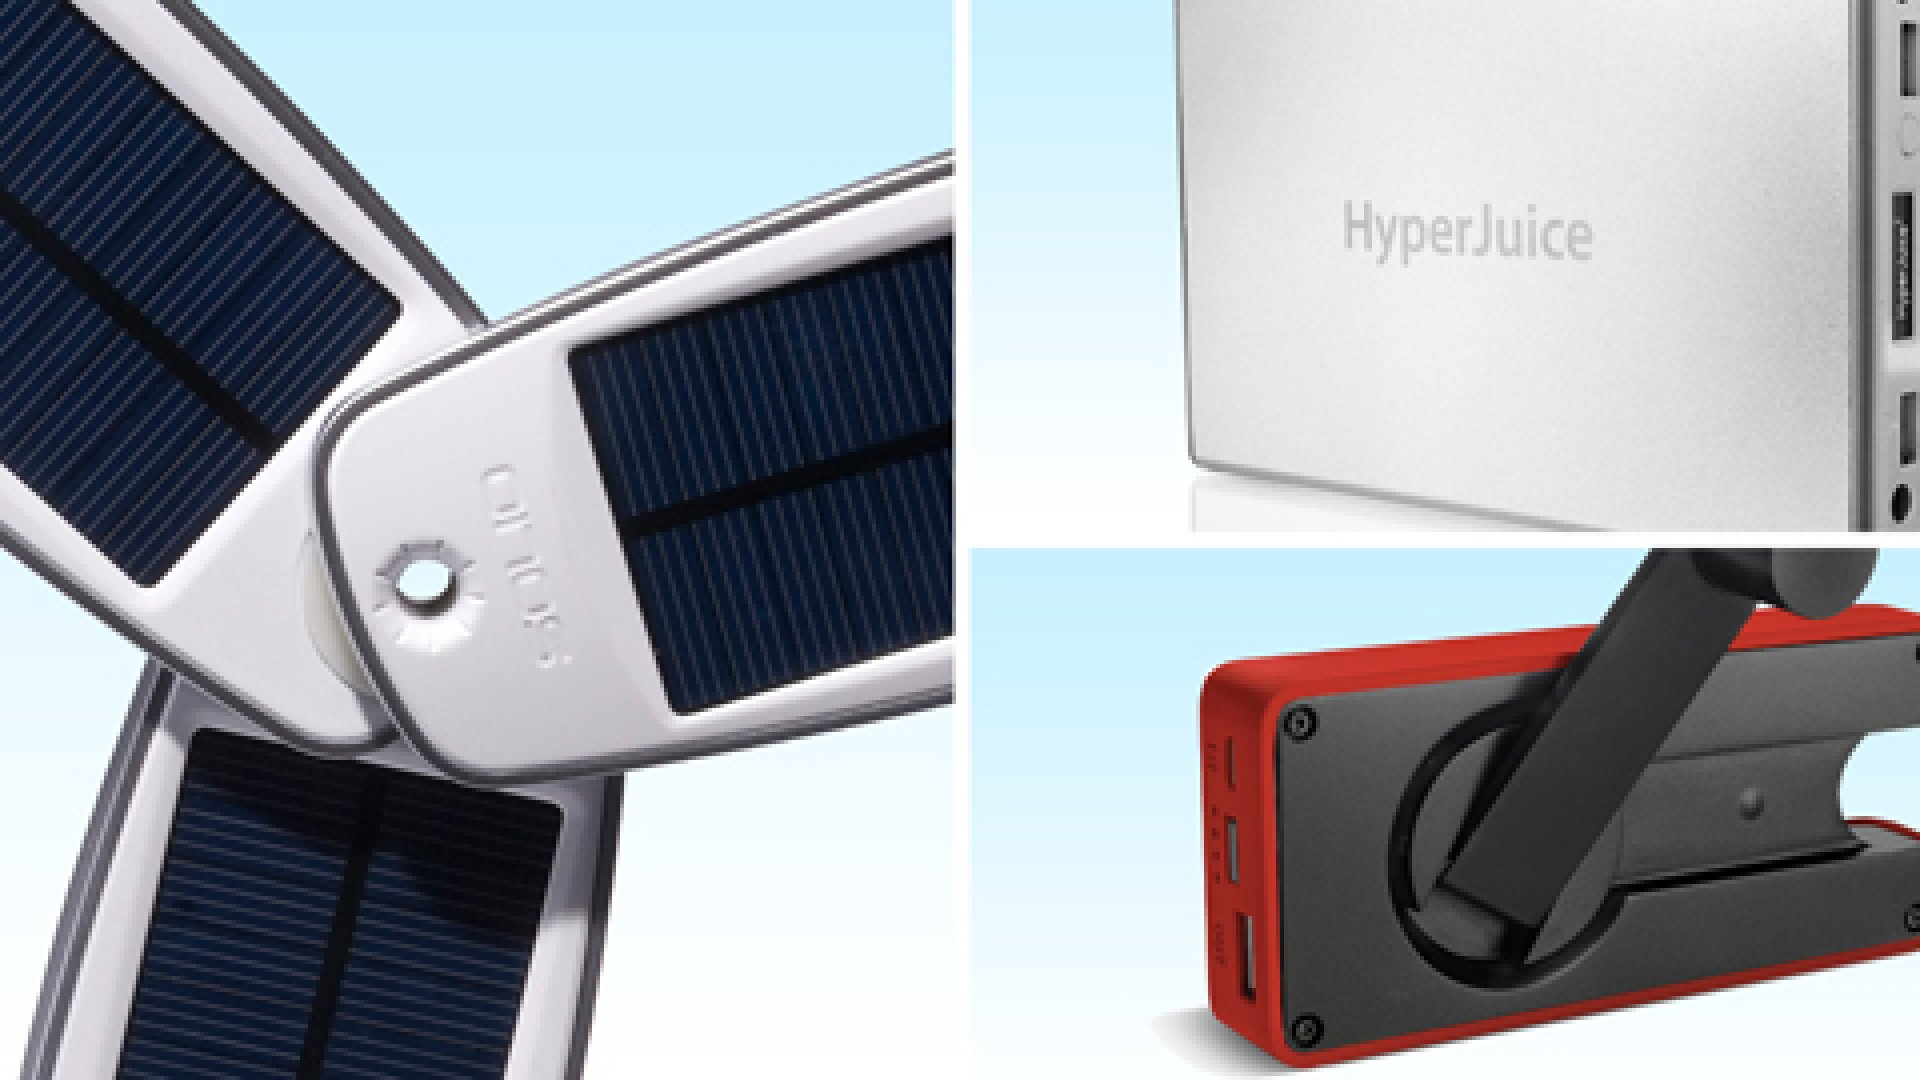 Clockwise left to right: Solio Classic2 Battery Pack + Solar Charger, HyperJuice 2 External Battery, Eton BoostTurbine2000